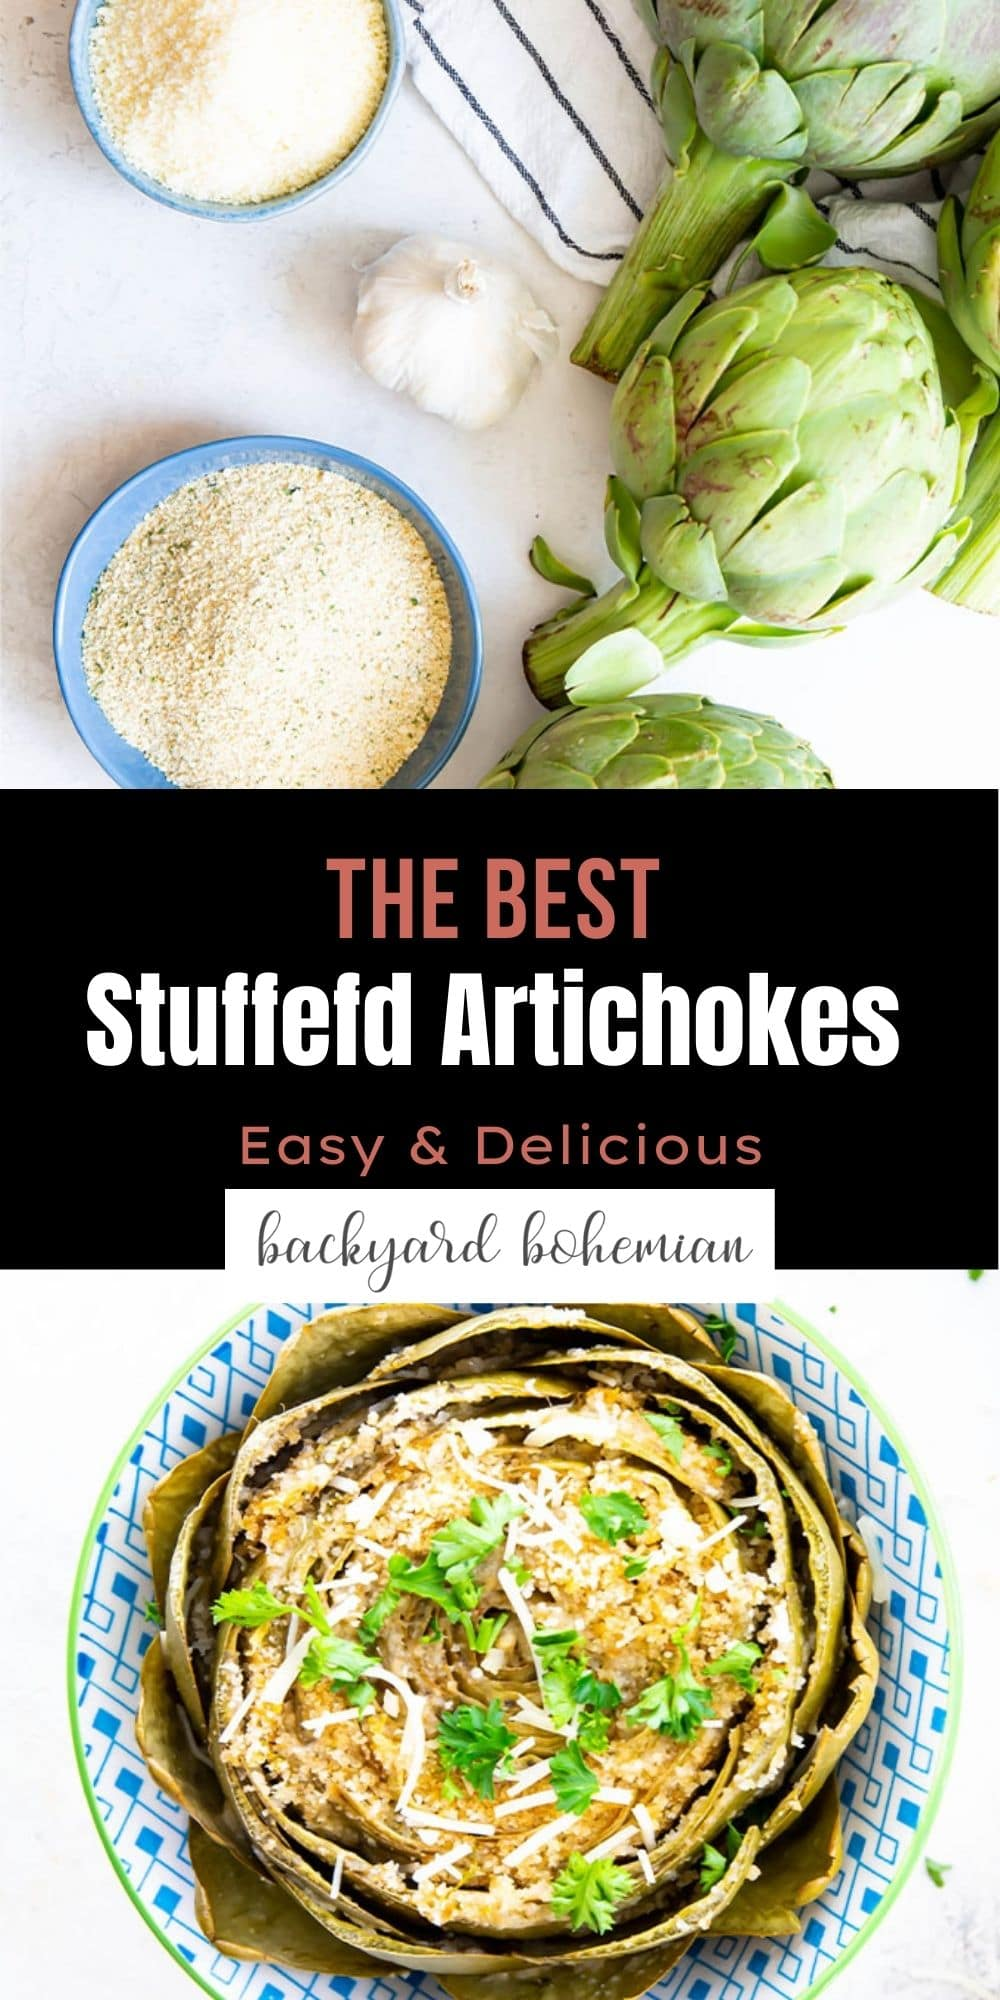 Italian stuffed artichokes are made with simple, healthy ingredients and are ready in under 1 hour. These stuffed artichokes can be made on the stovetop or the Instant Pot! via @foodhussy